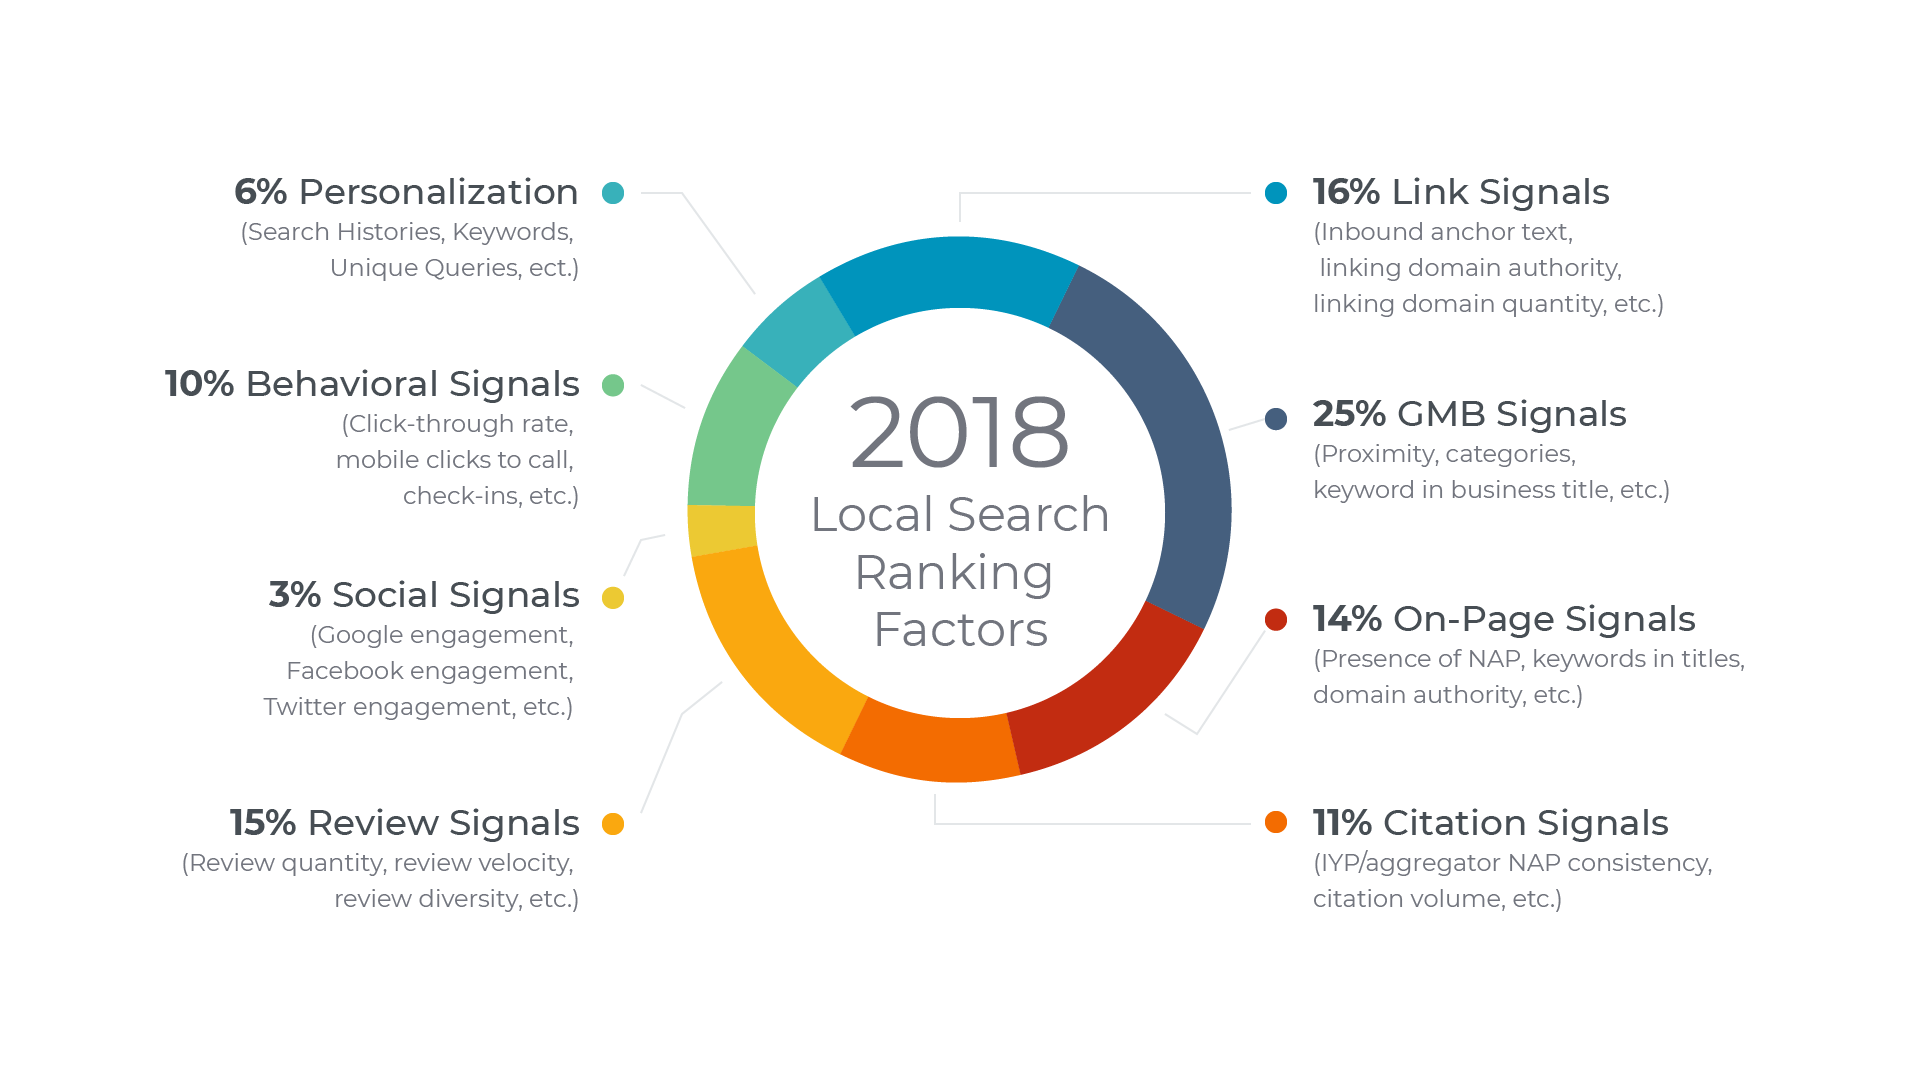 2018 Local Search Ranking Factors